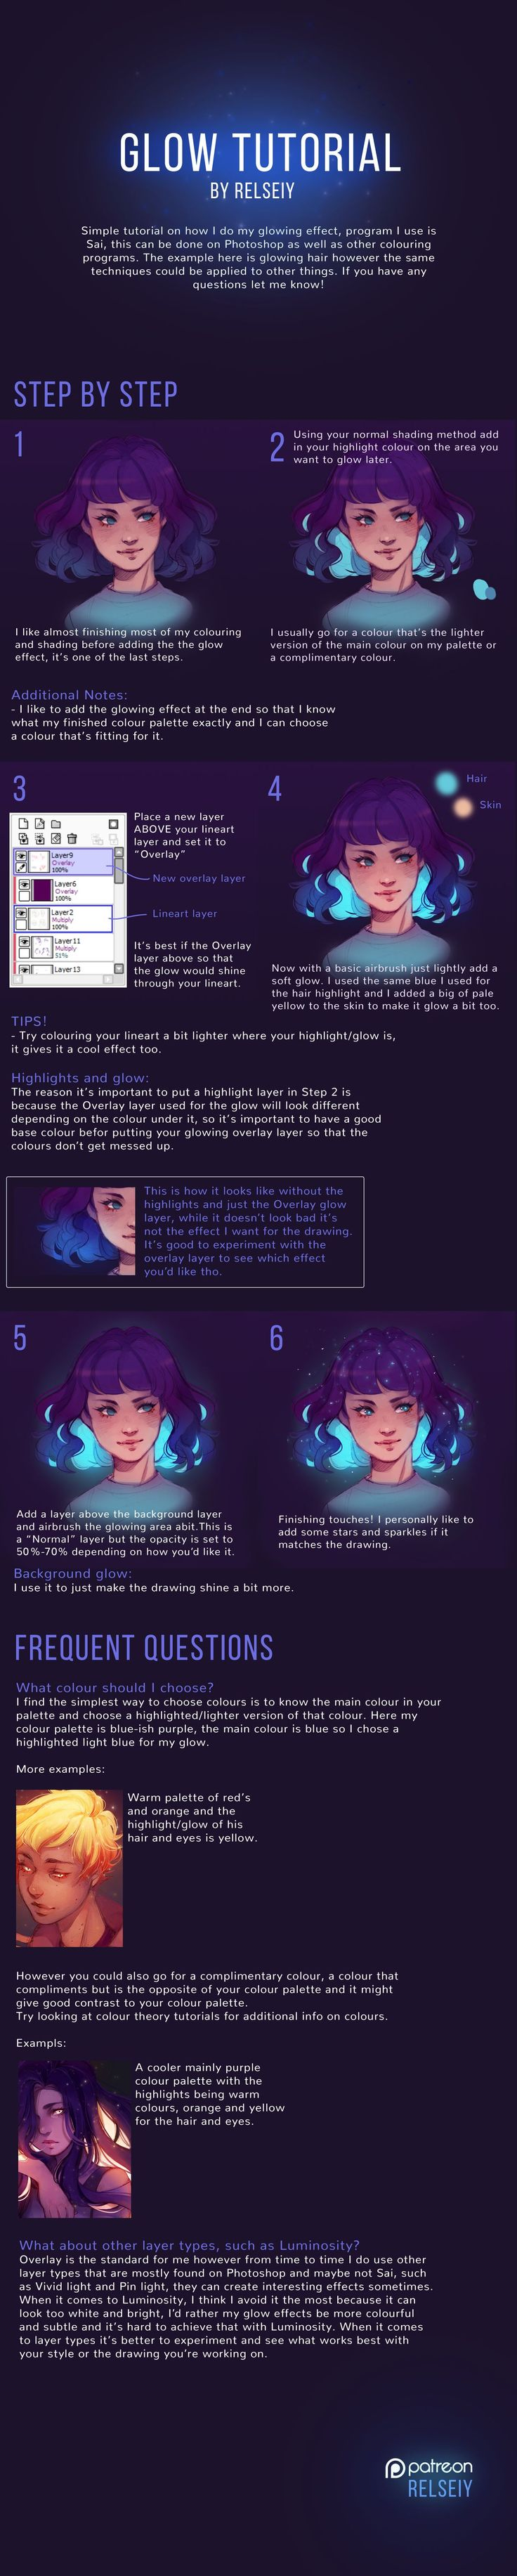 Official Post from Relseiy: Full version of my Glow tutorial, this isn't the only way of achieving a glowing effect but it's just how I do it, hopefully you'll find this helpful in some way! Comment what other tutorials you'd like to see next! Whenever I post a tutorial I'll be making a more detailed version here for Patreon, Clique aqui http://www.estrategiadigital.pt/e-book-gratuito-ferramentas-para-websites/ e faça agora mesmo Download do nosso E-Book Gratuito sobre FERRAMENTAS PARA…